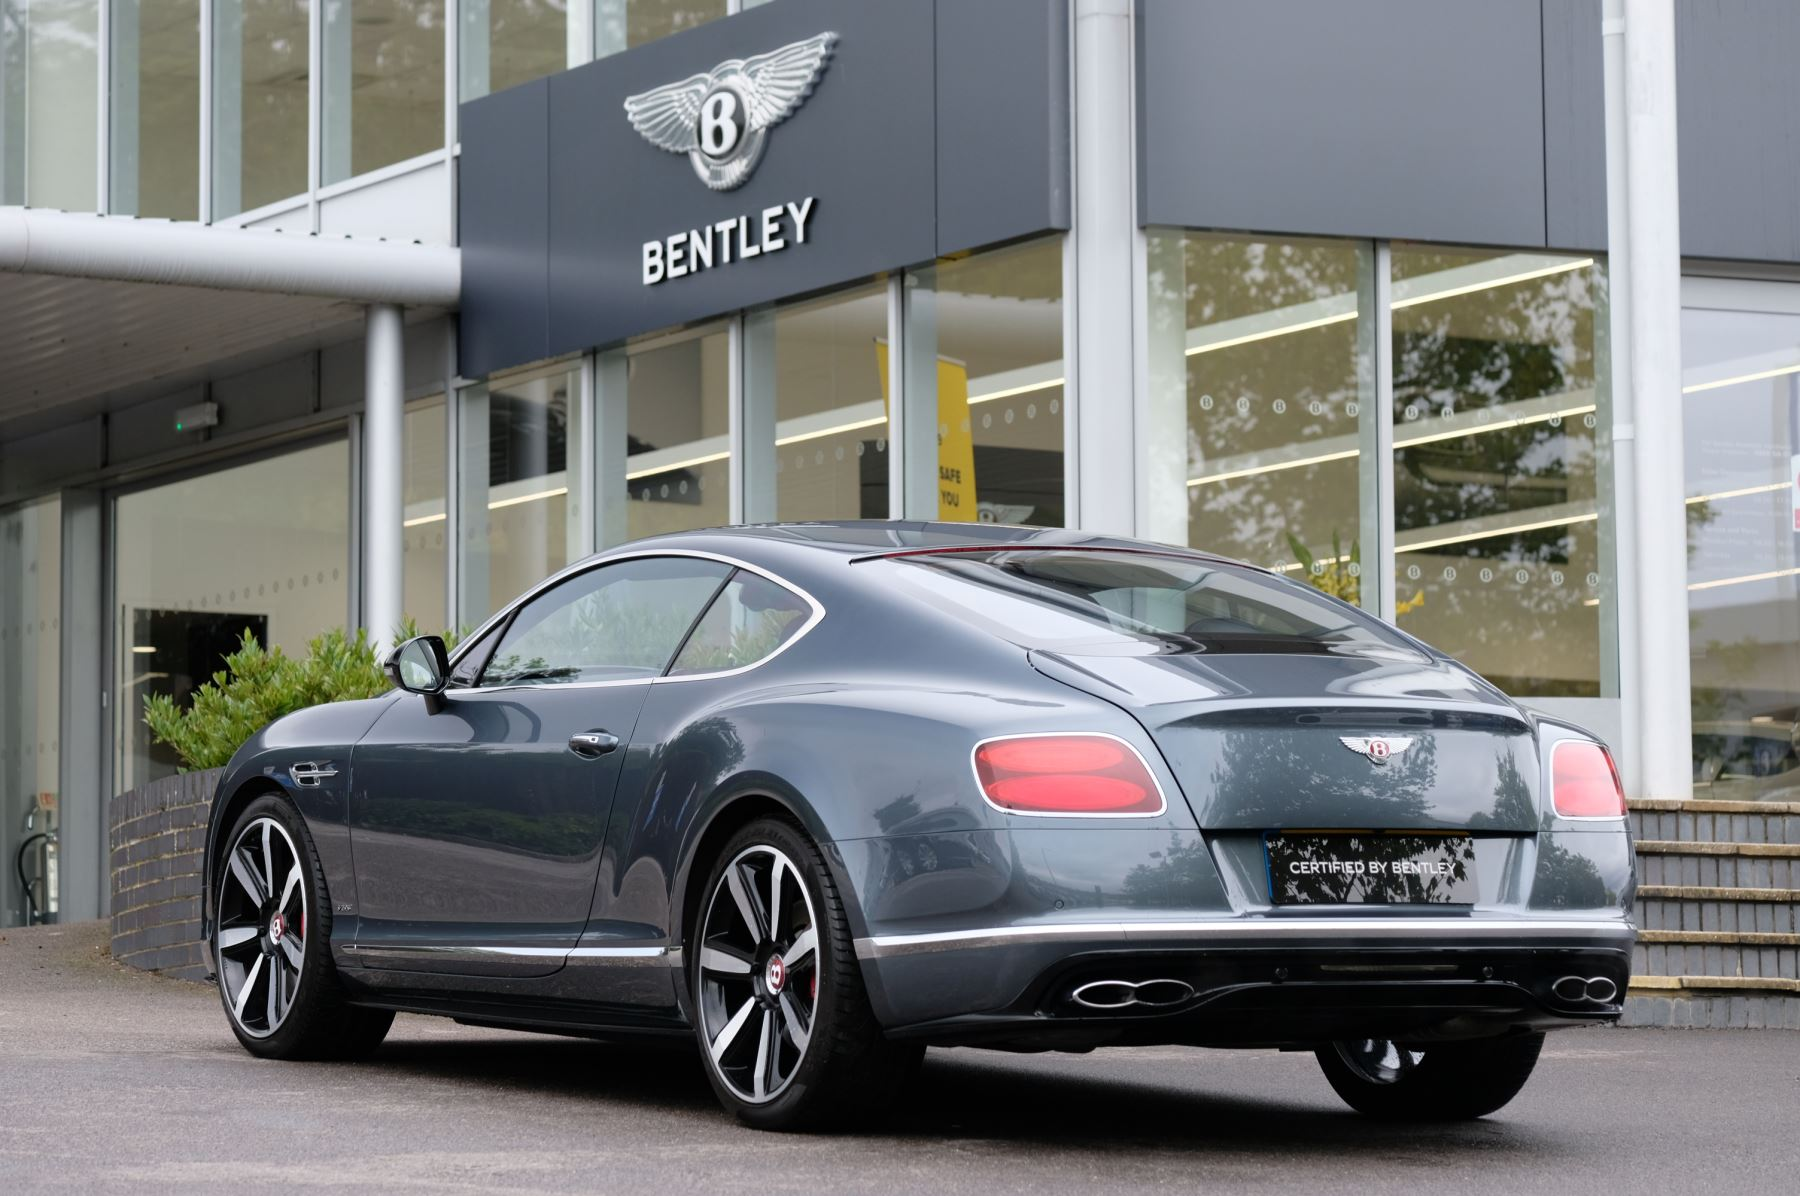 Bentley Continental GT 4.0 V8 S Mulliner Driving Spec 2dr image 5